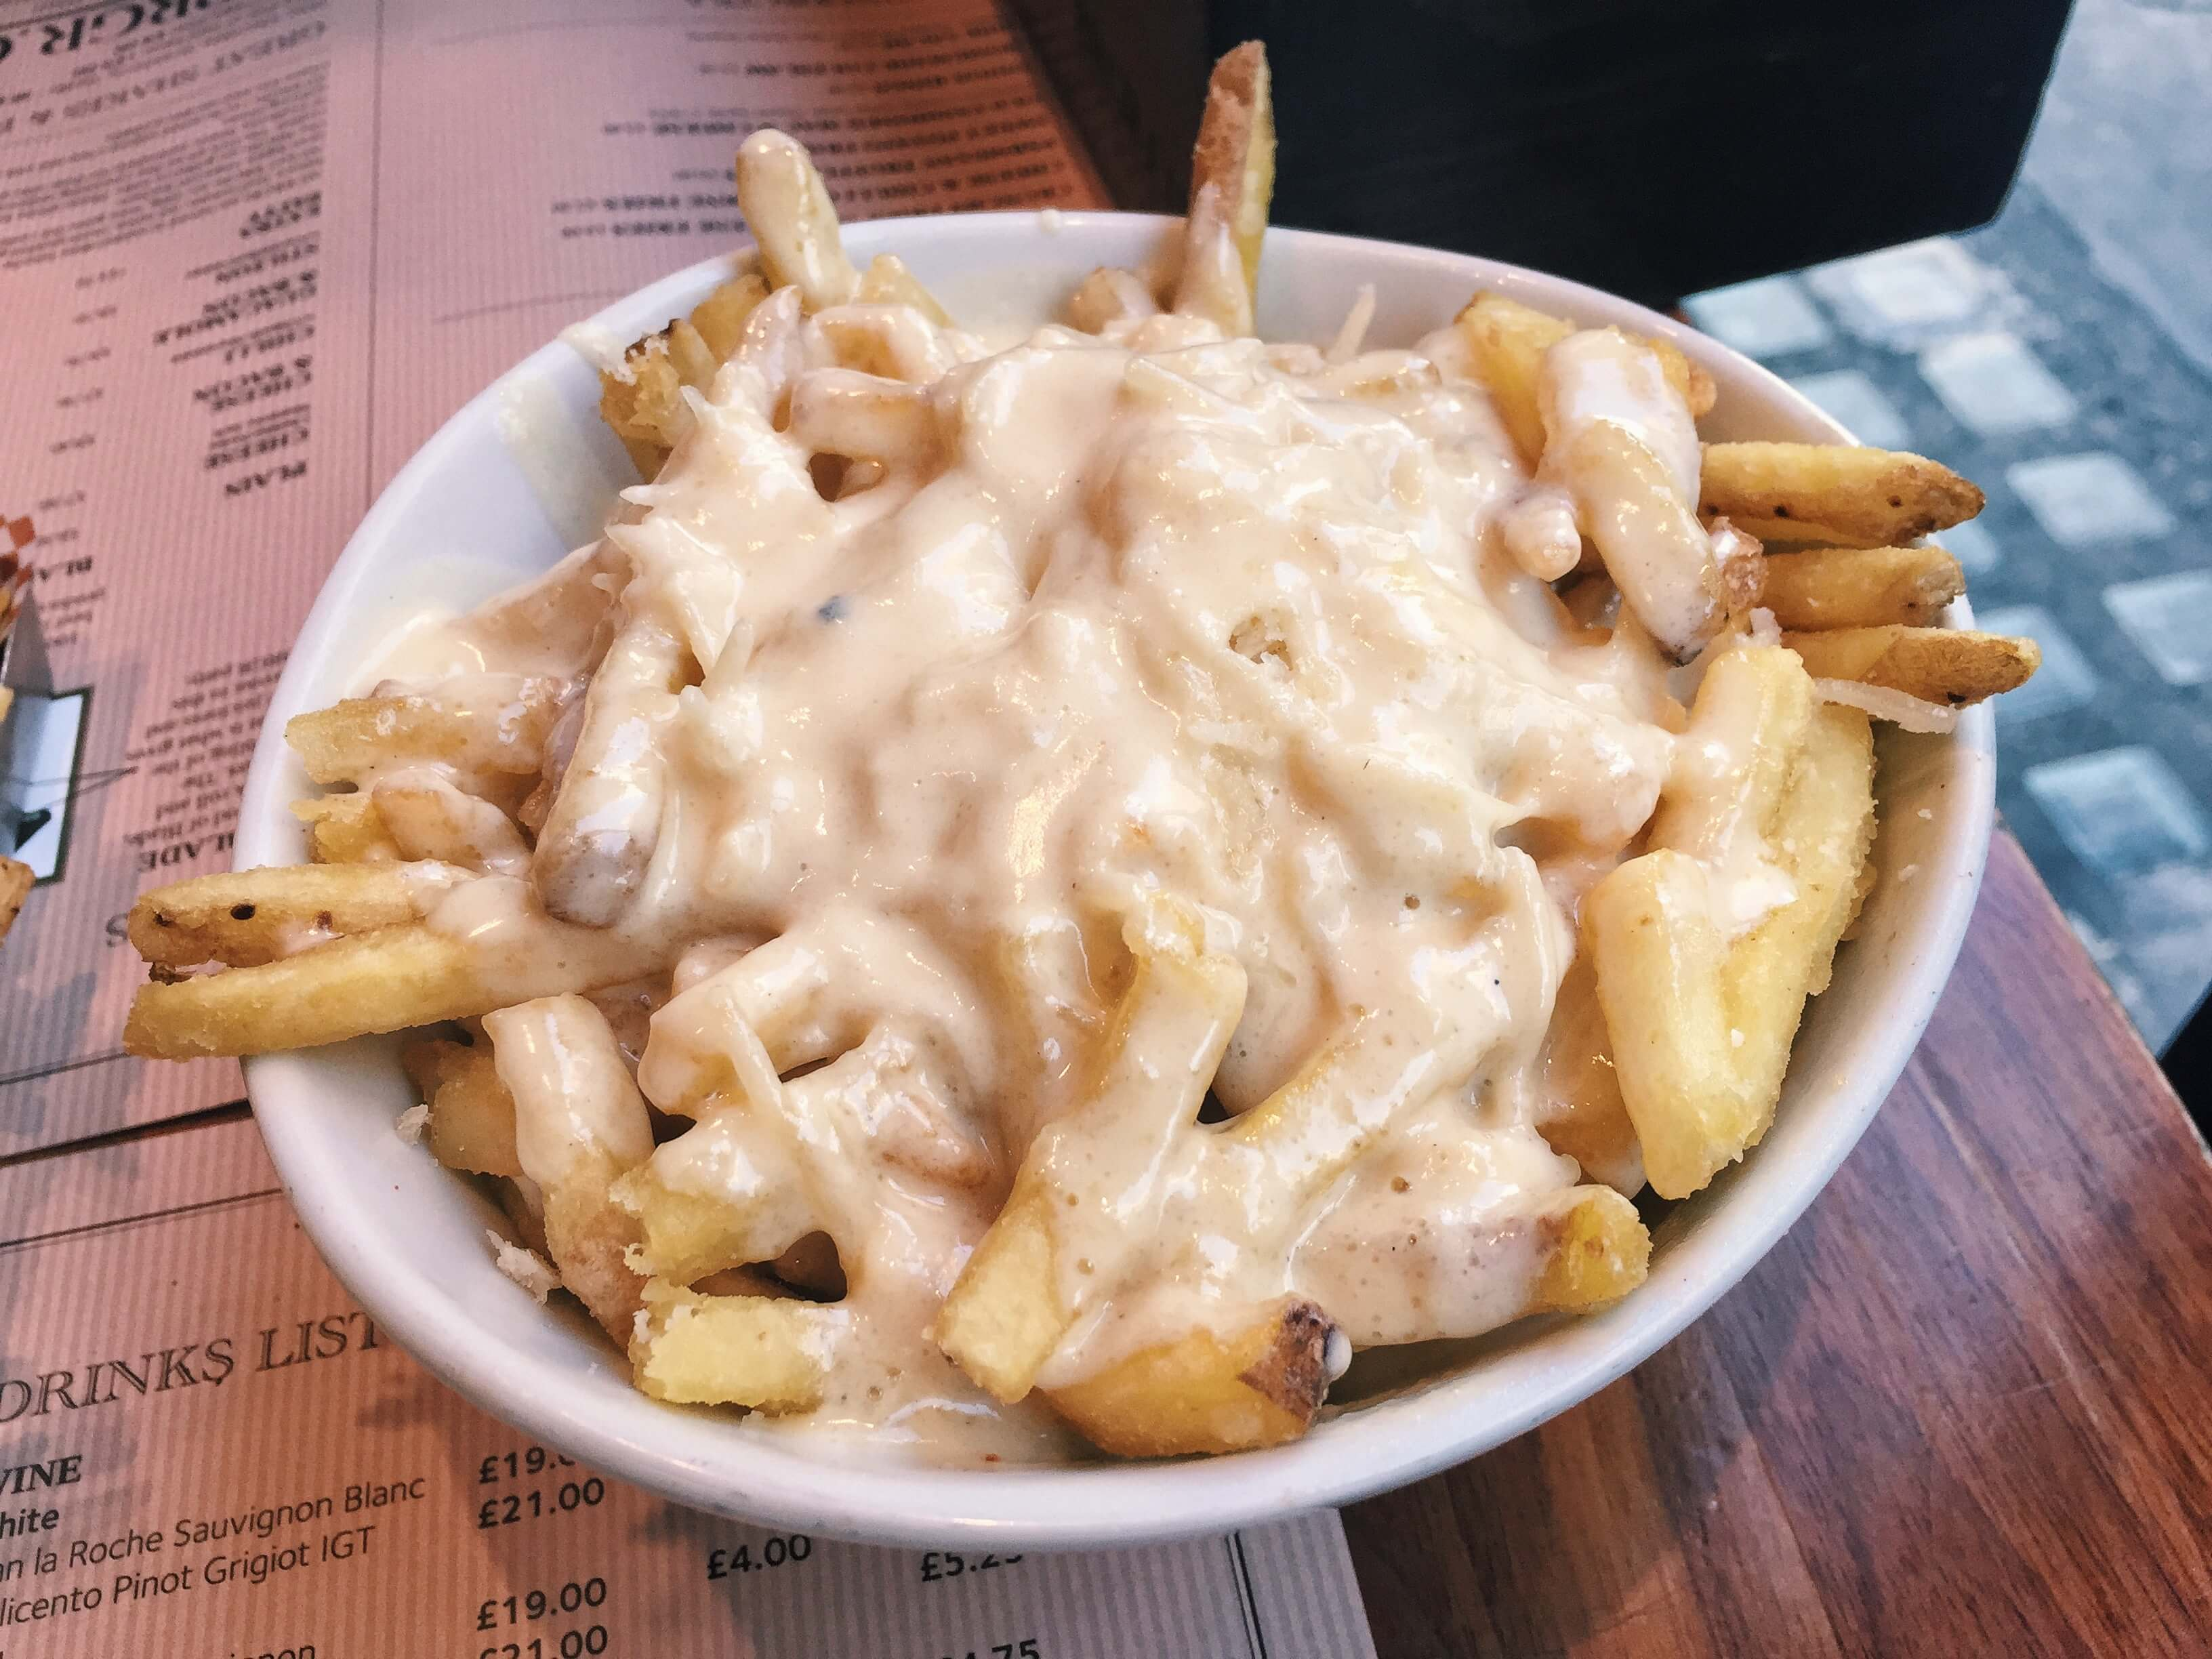 Parmesan truffle fries from BRGR.CO in Soho, London